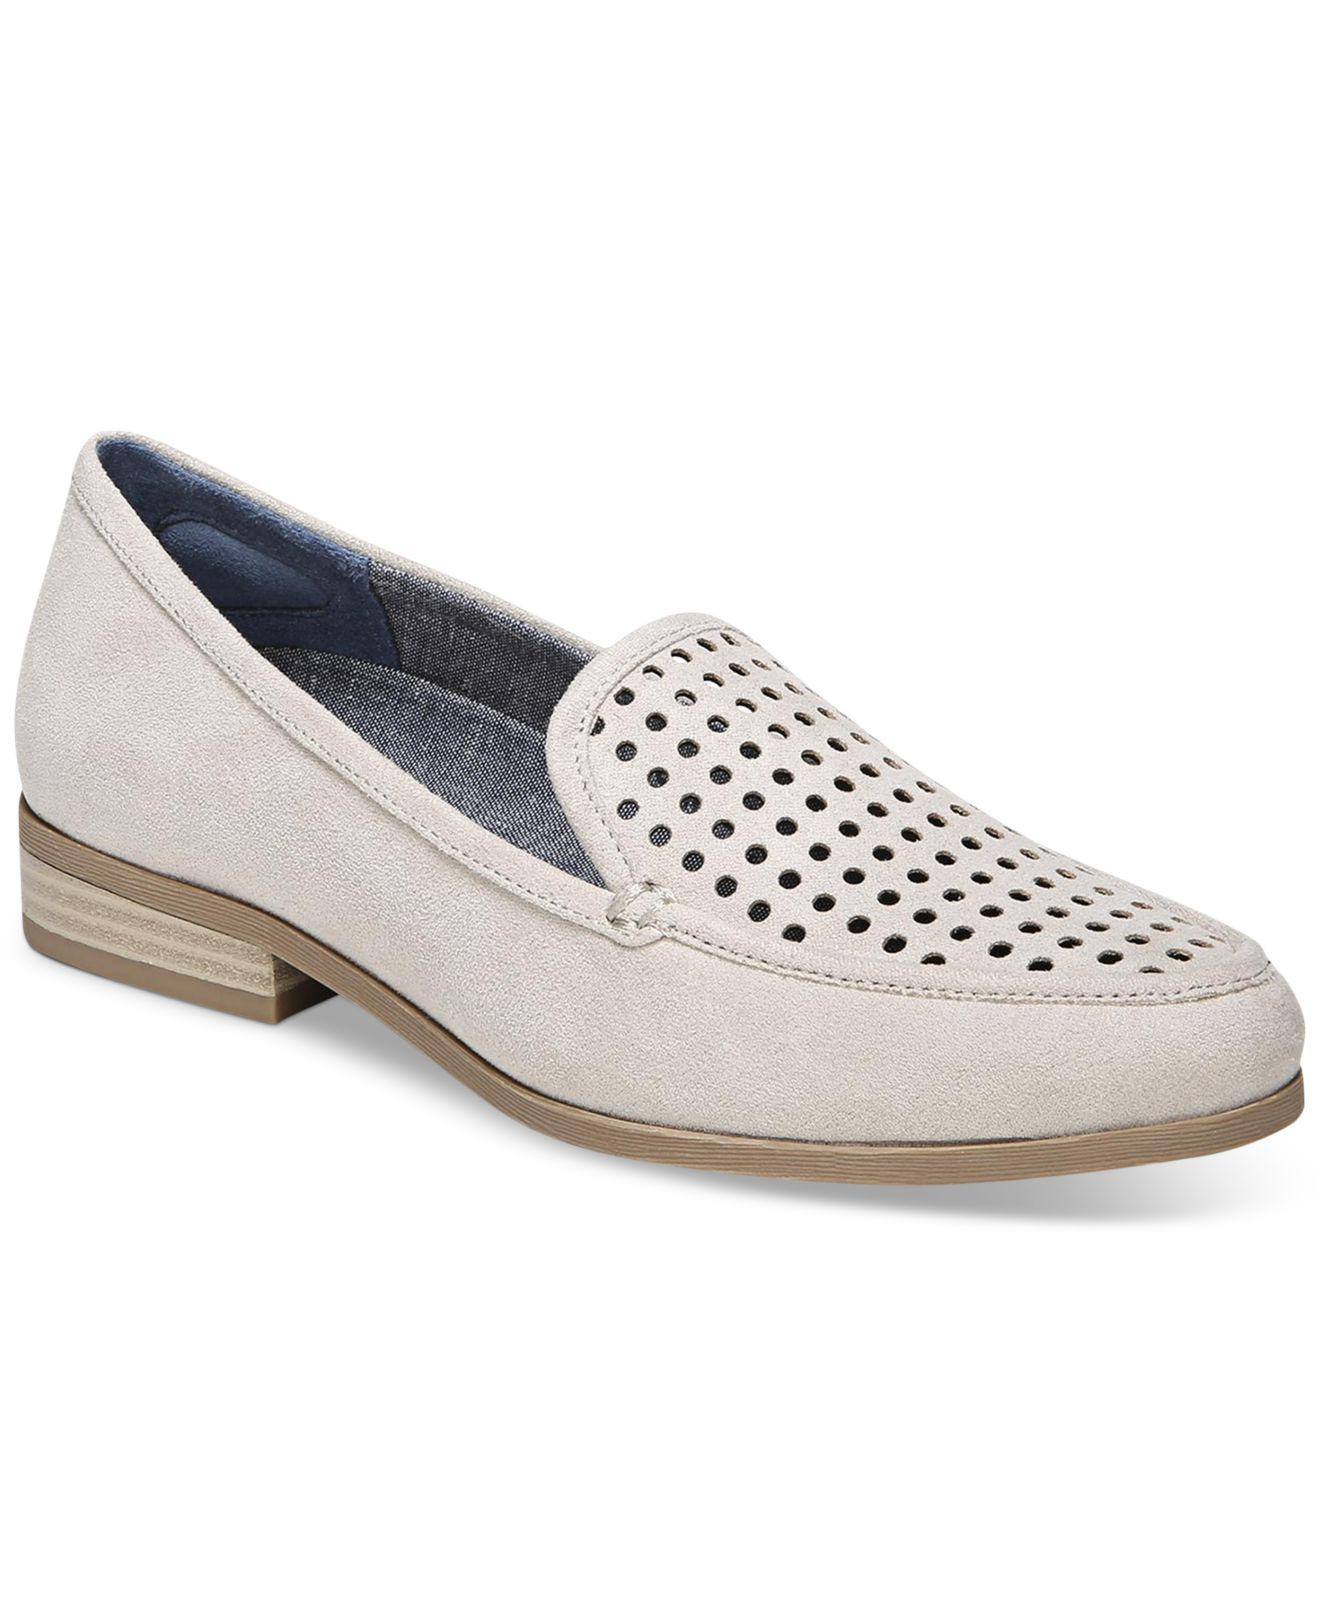 Lyst Dr. 30.0% Scholls Excite Chop Loafers in Gris Save 30.0% Dr. 907d94